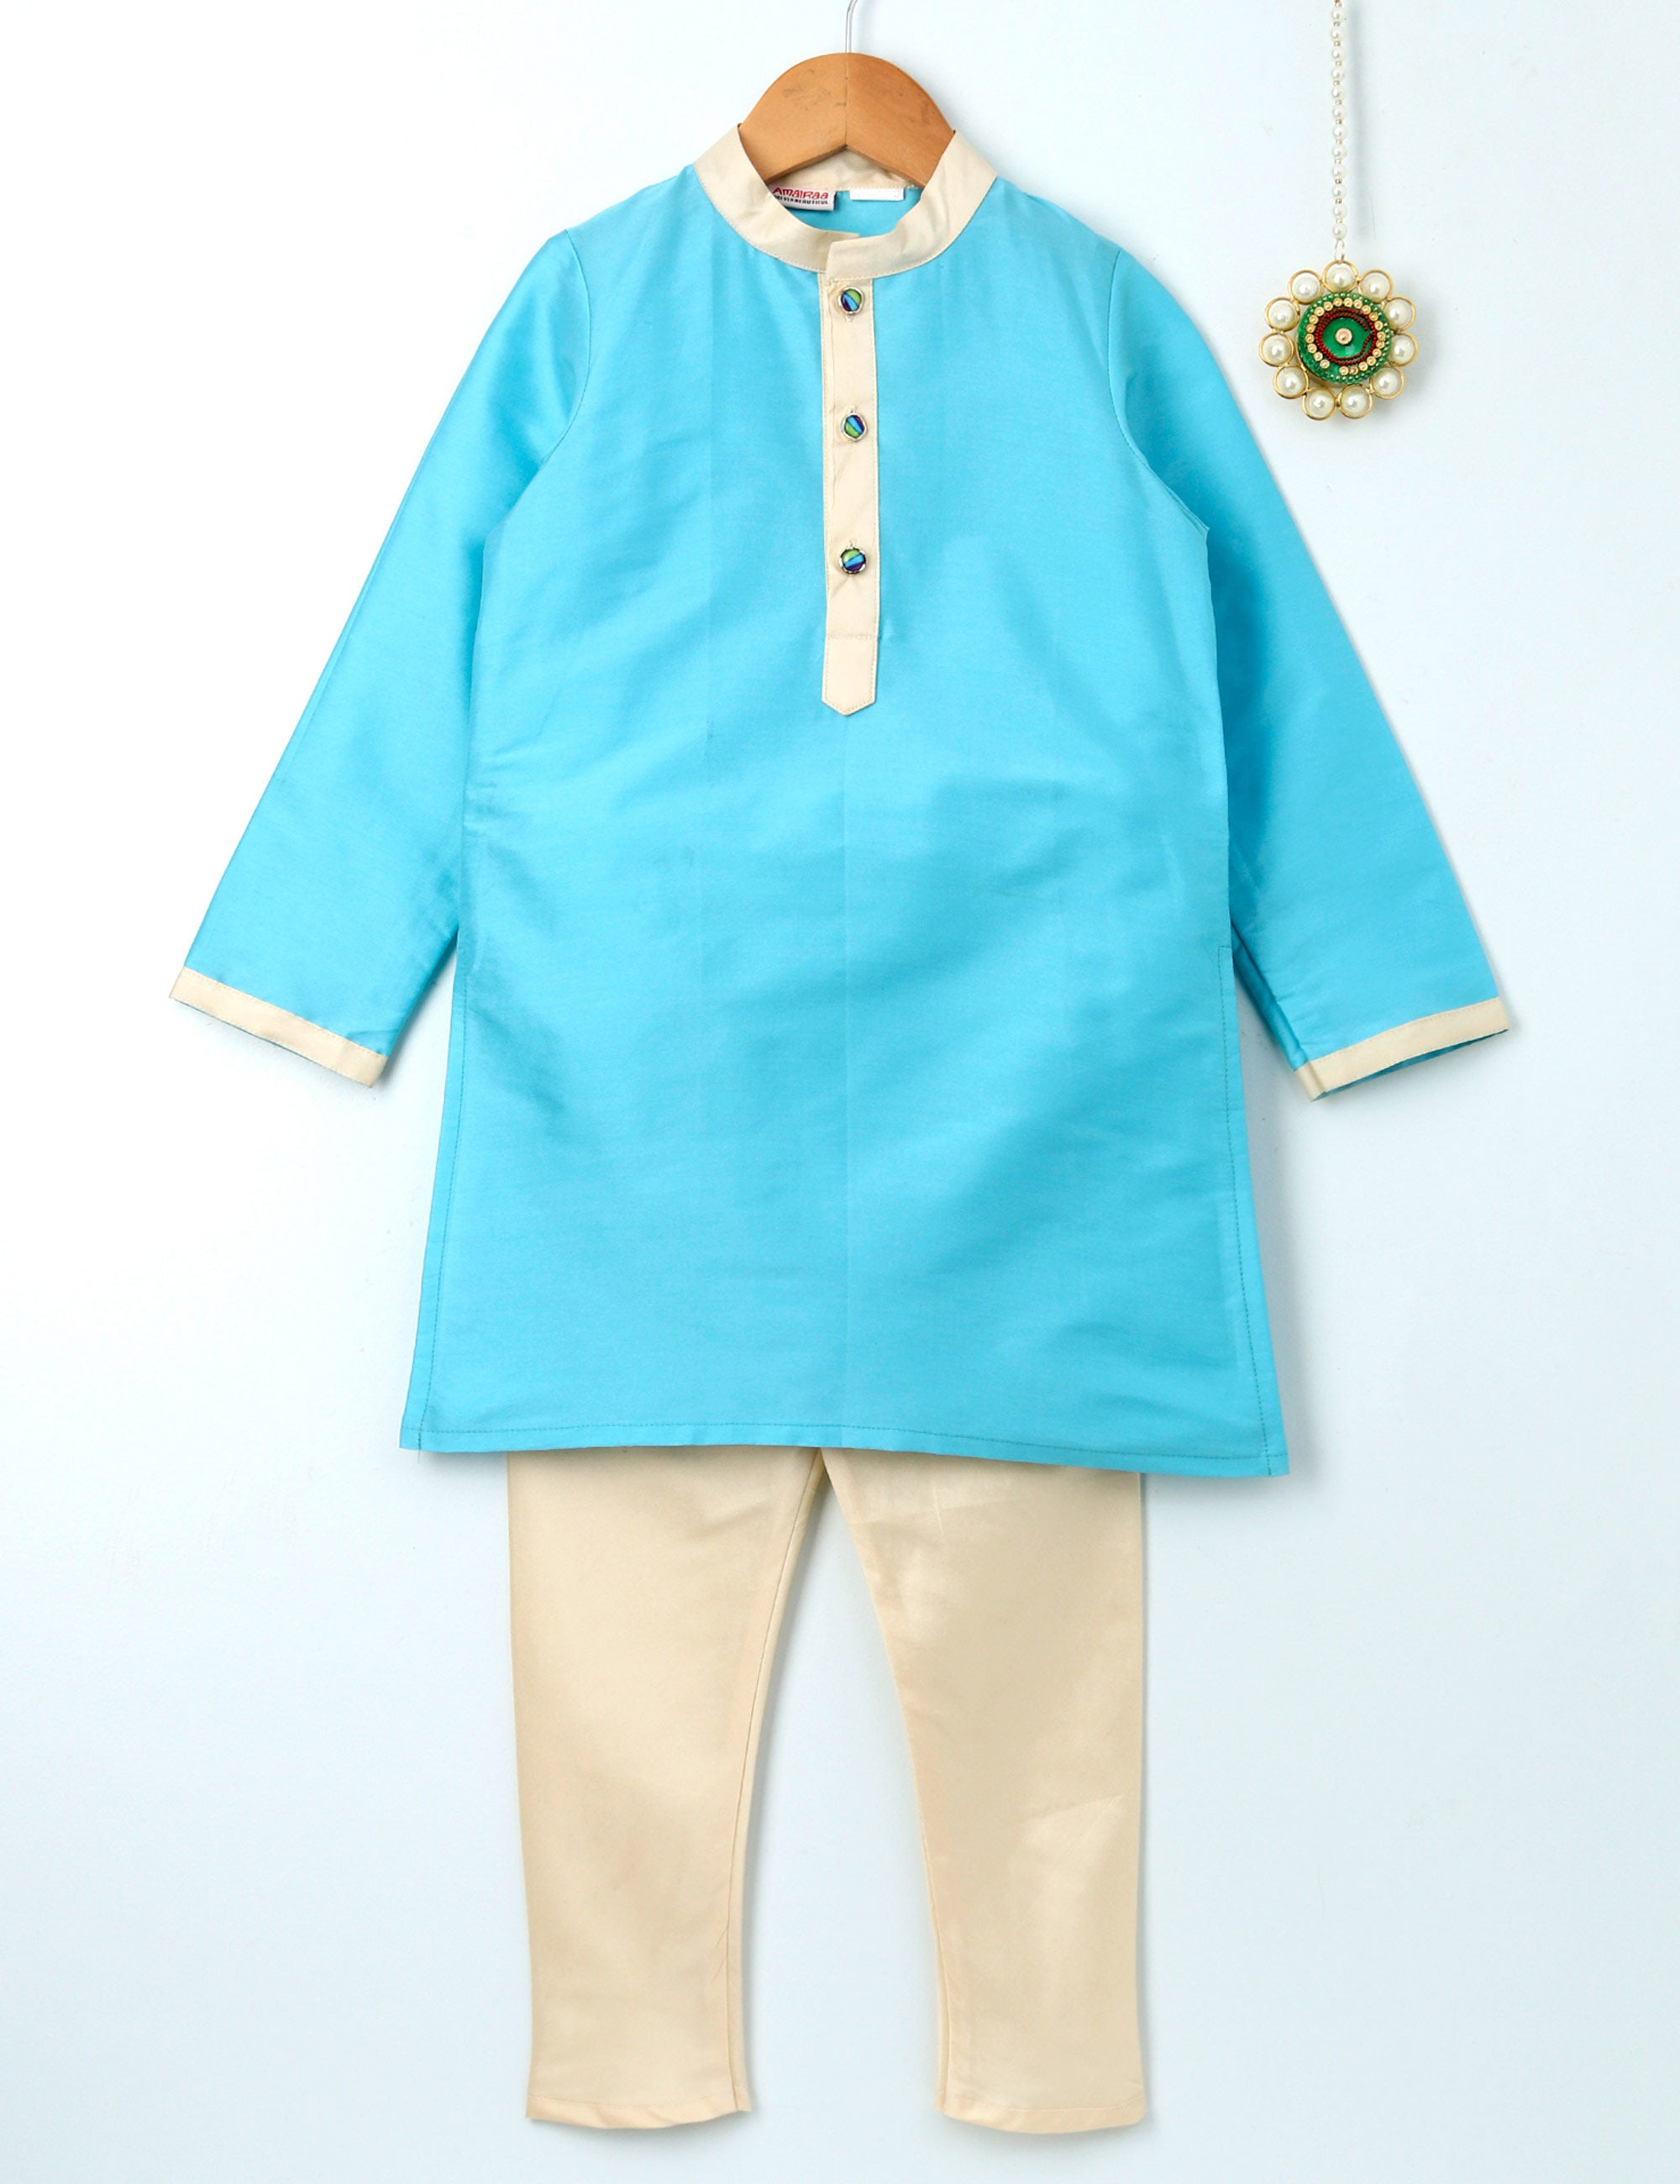 Kurta Pyjama Set in Blue Colour for Boys